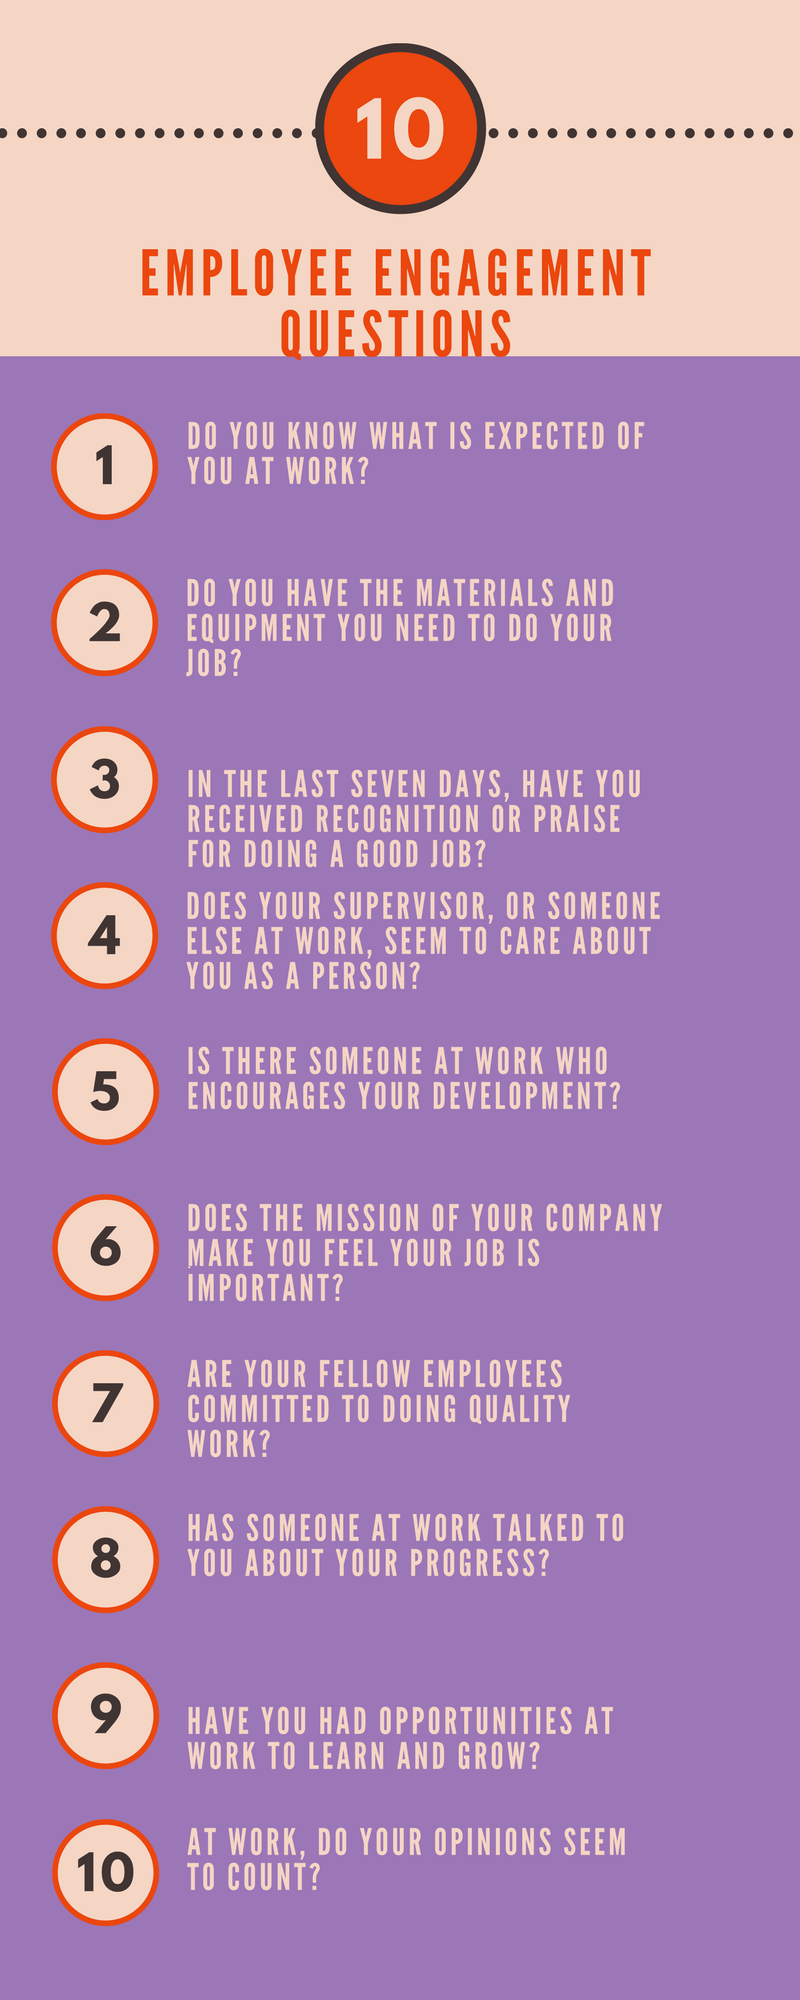 10 employee engagement questions